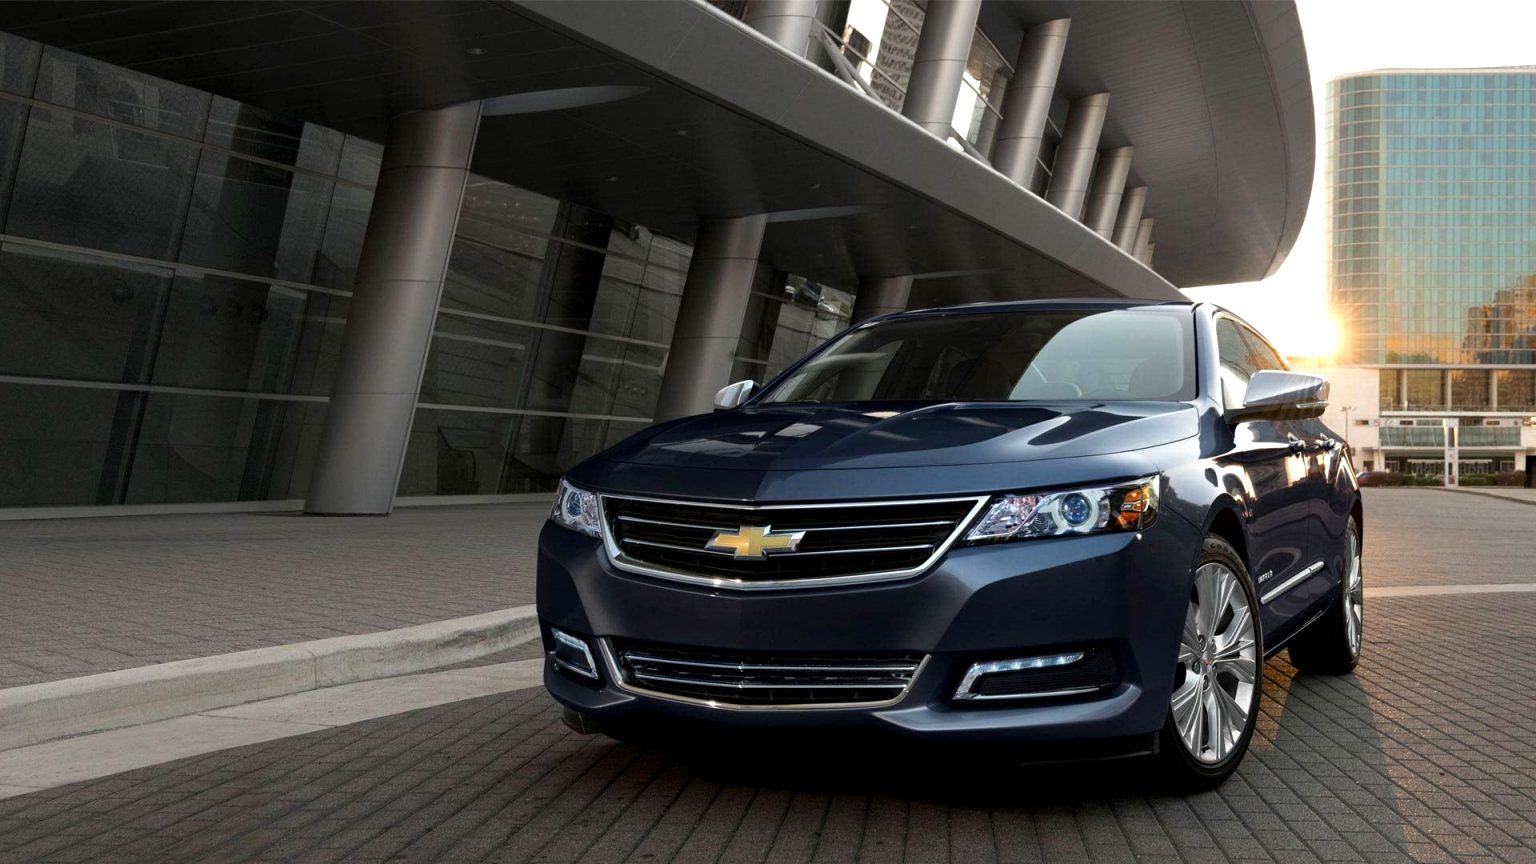 chevrolet impala 2021 for sale Configurations